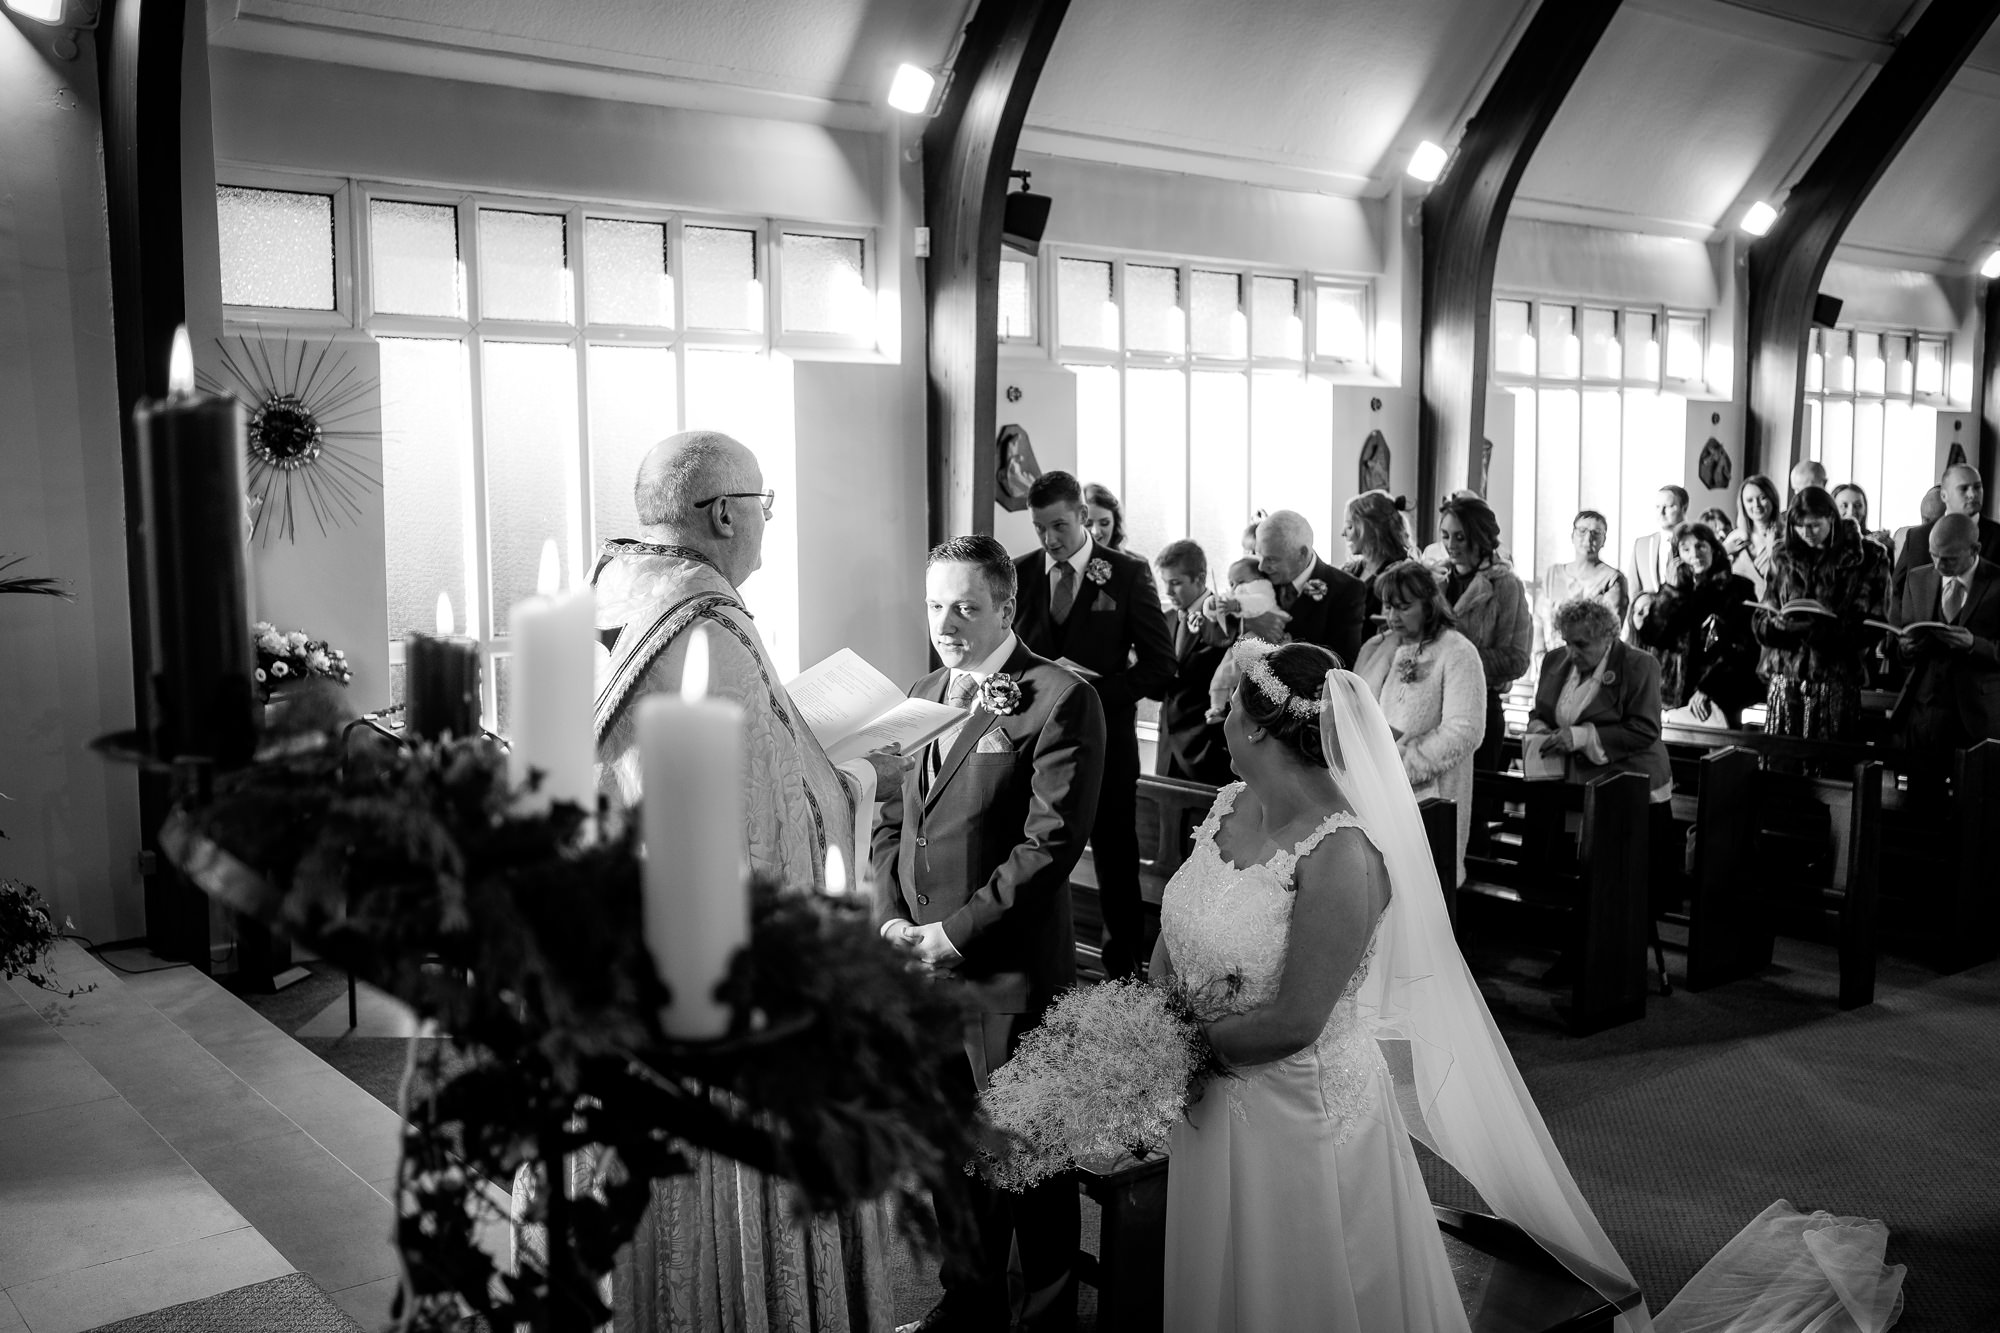 bride greets groom at the end of the aisle